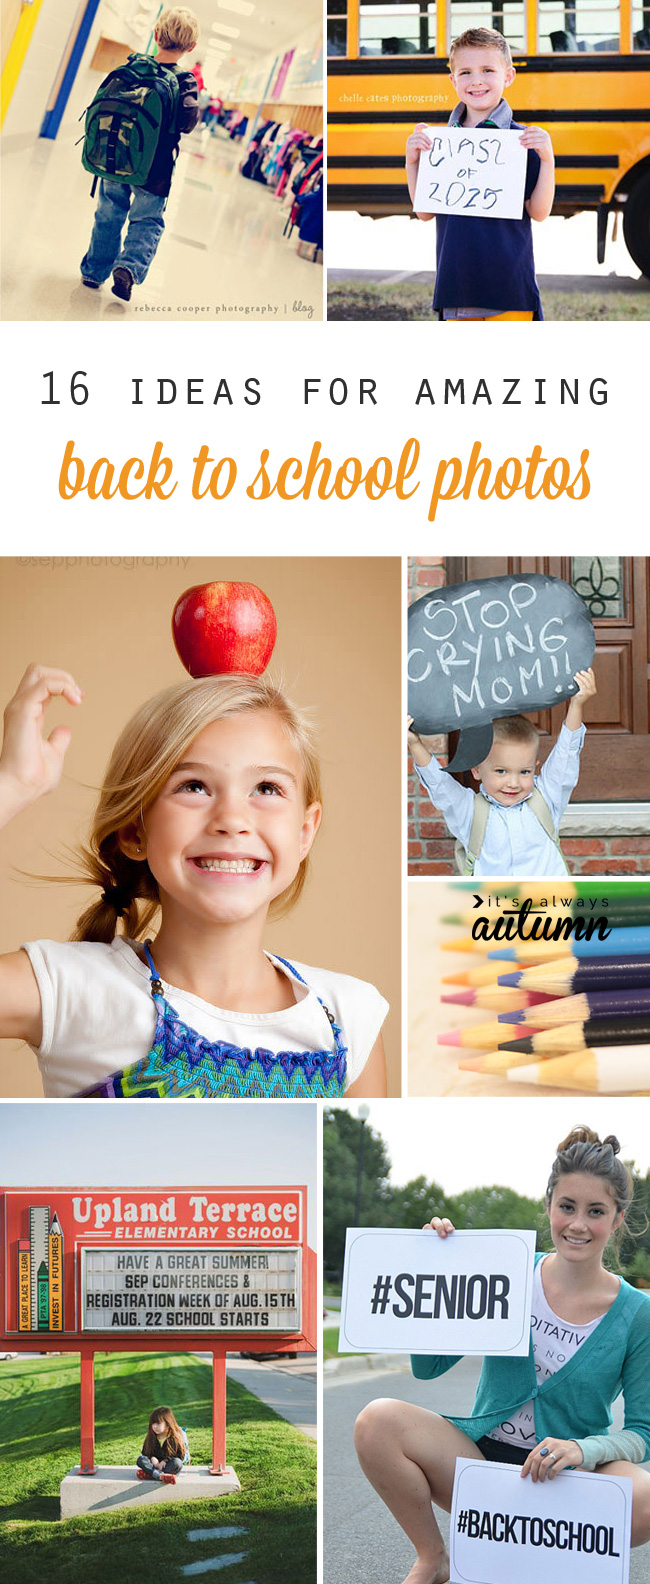 great tips and ideas for first day of school pictures or a back to school photoshoot. I want to try some of these this year!